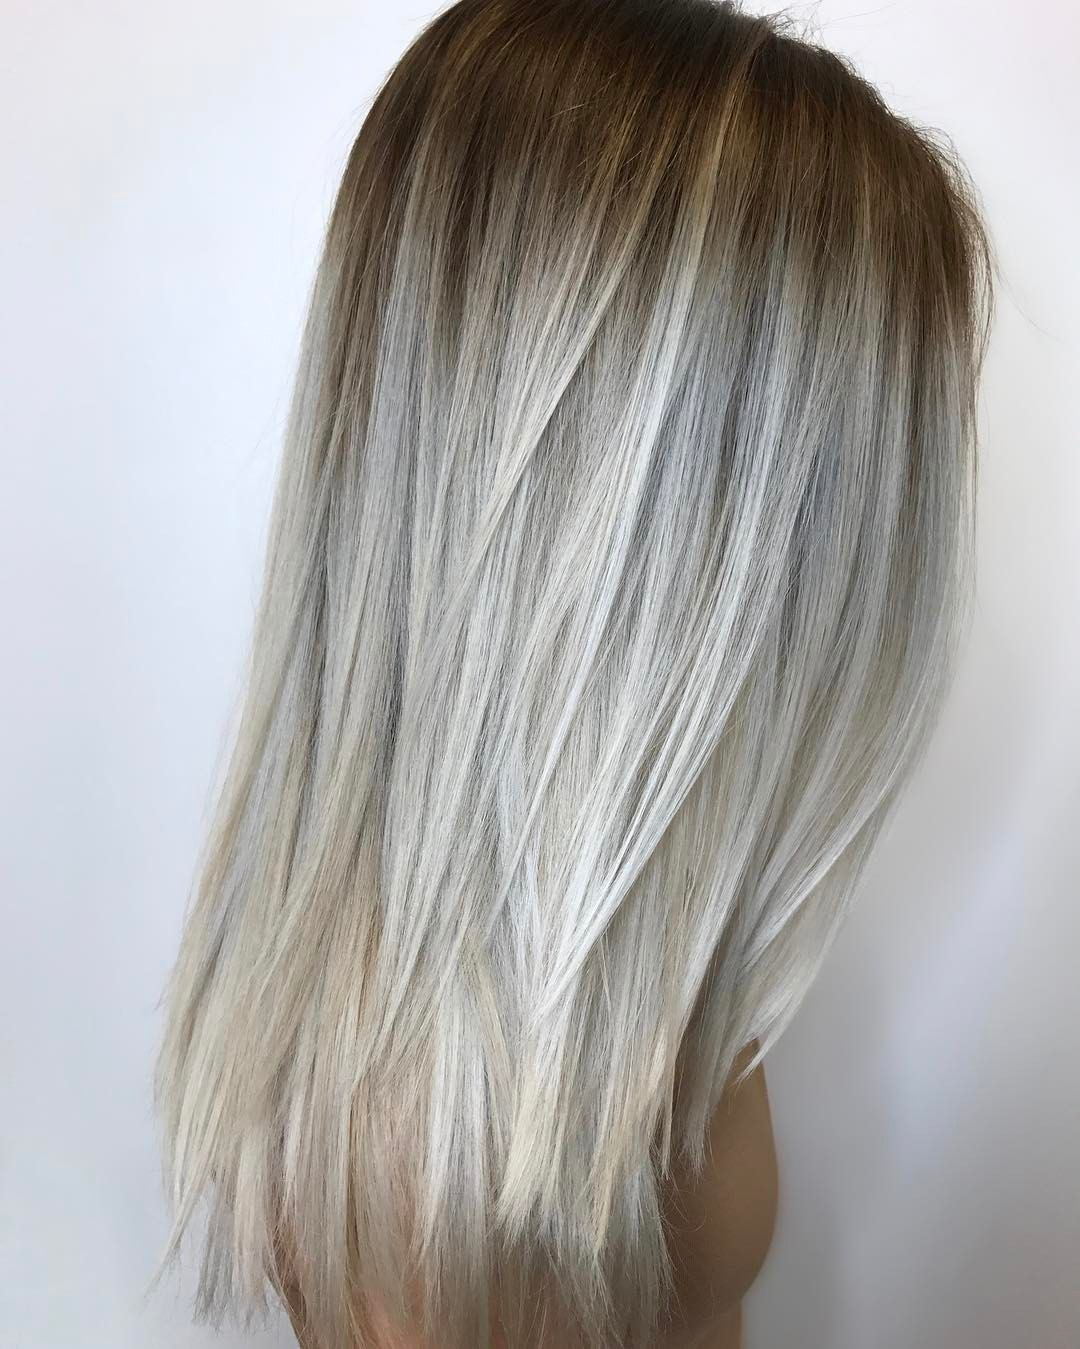 Pin by patricia morales on cabello pinterest instagram hair